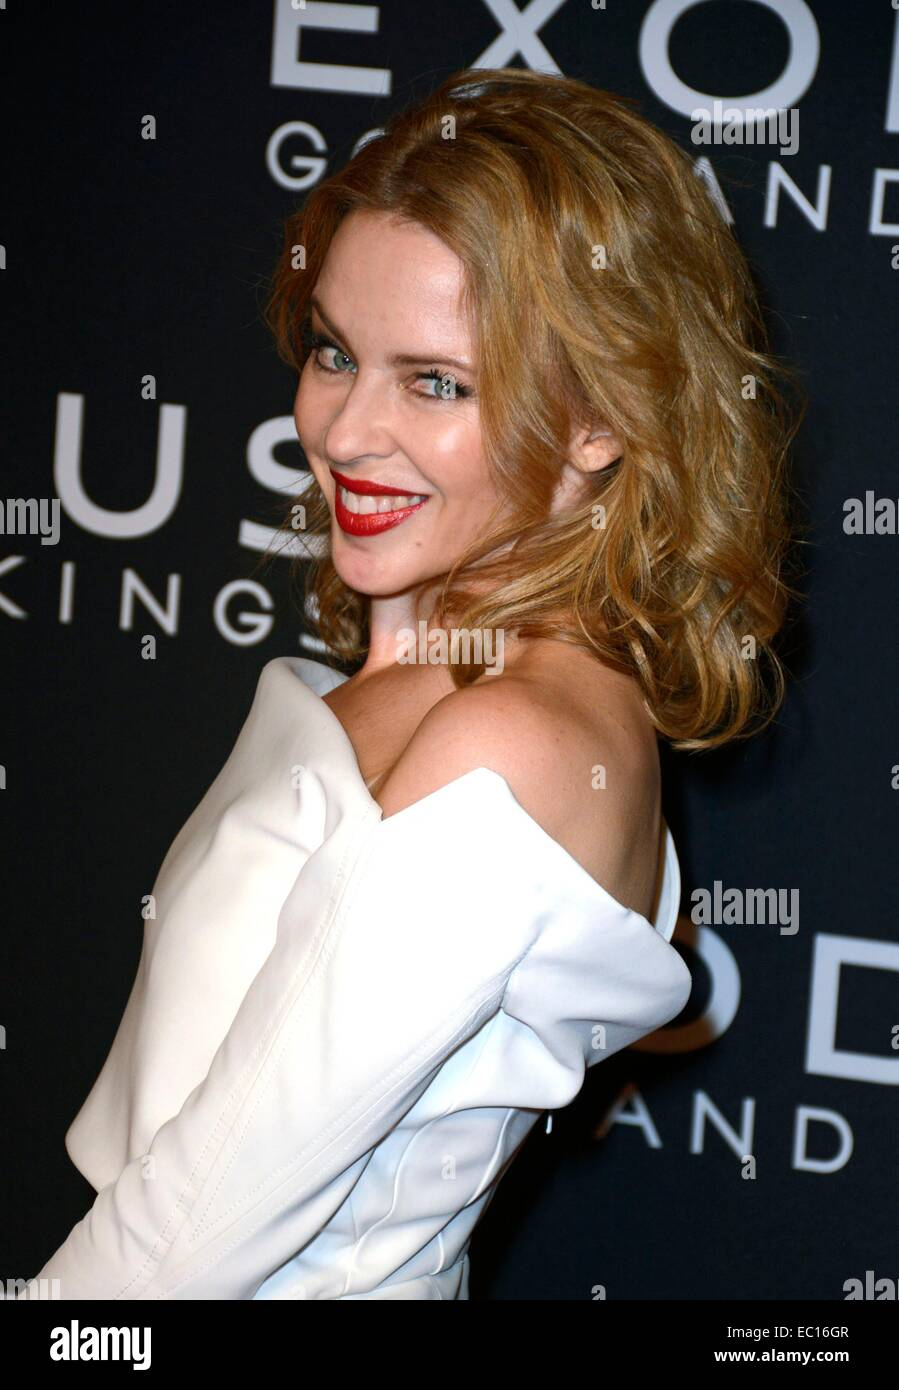 Brooklyn, NY, USA. 7th Dec, 2014. Kylie Minogue at arrivals for EXODUS: GODS AND KINGS Premiere, The Brooklyn Museum, - Stock Image